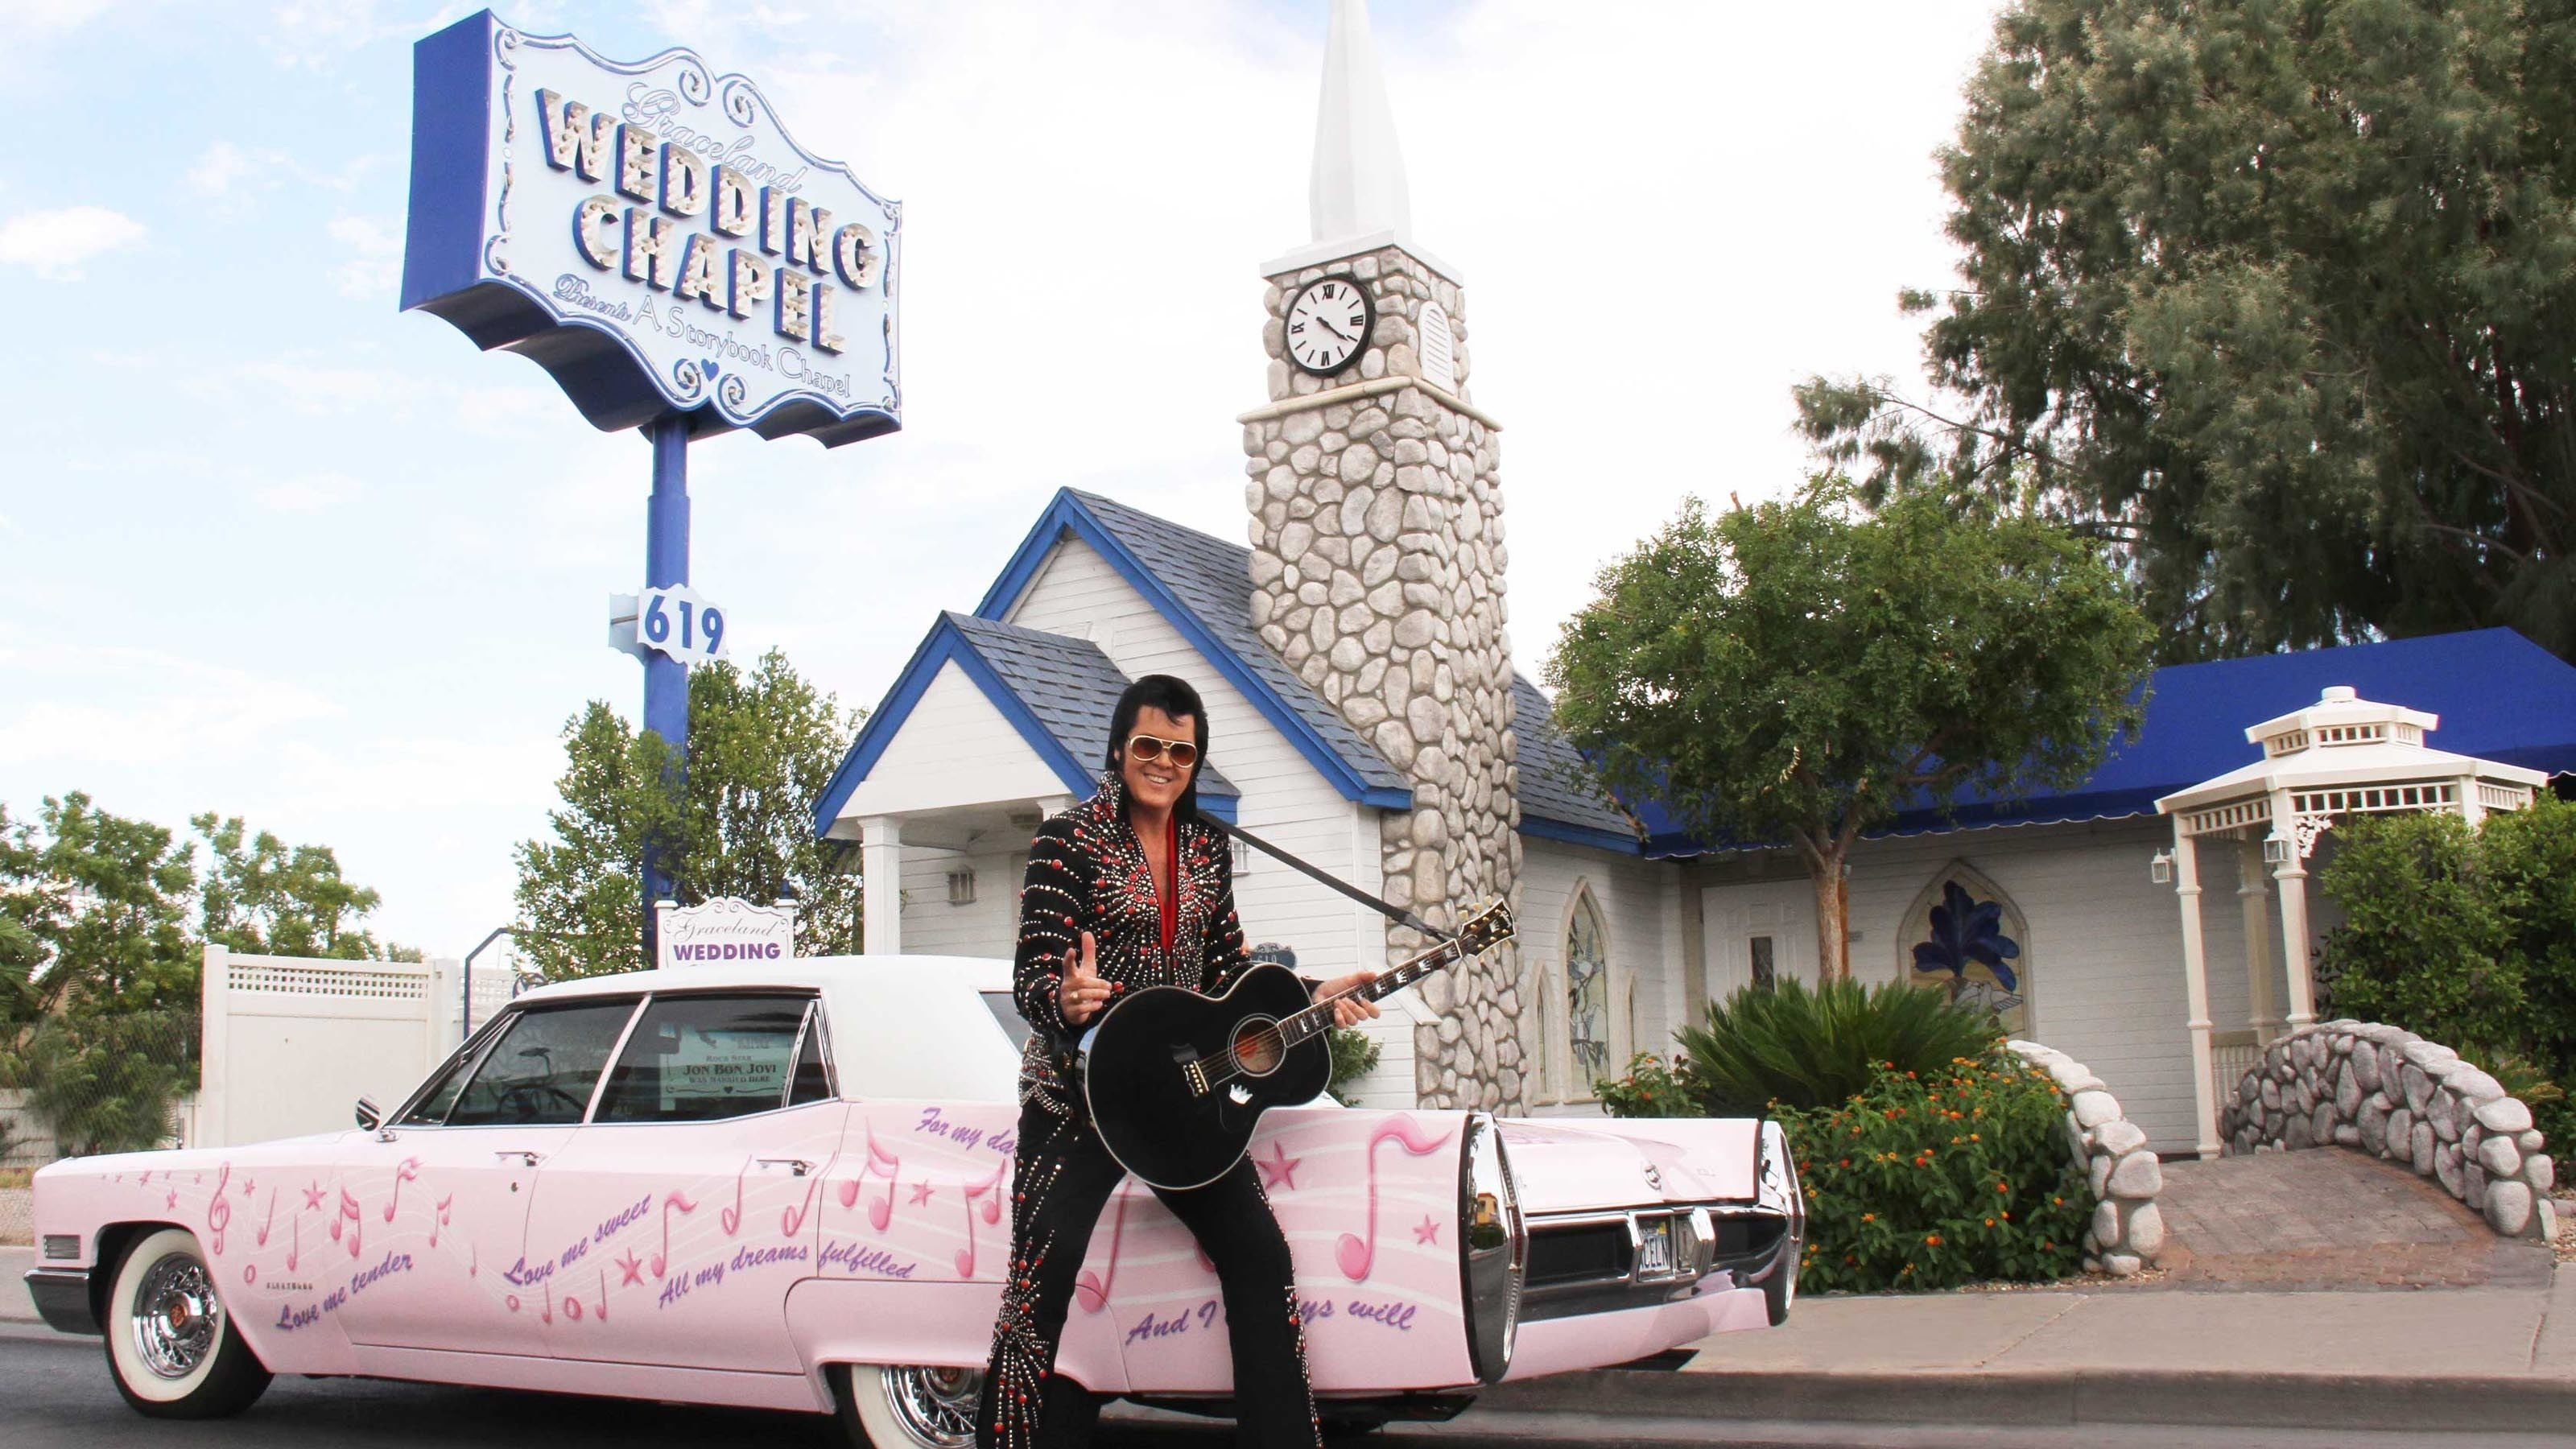 Elvis awaiting the arrival of the bride and groom to the wedding chapel